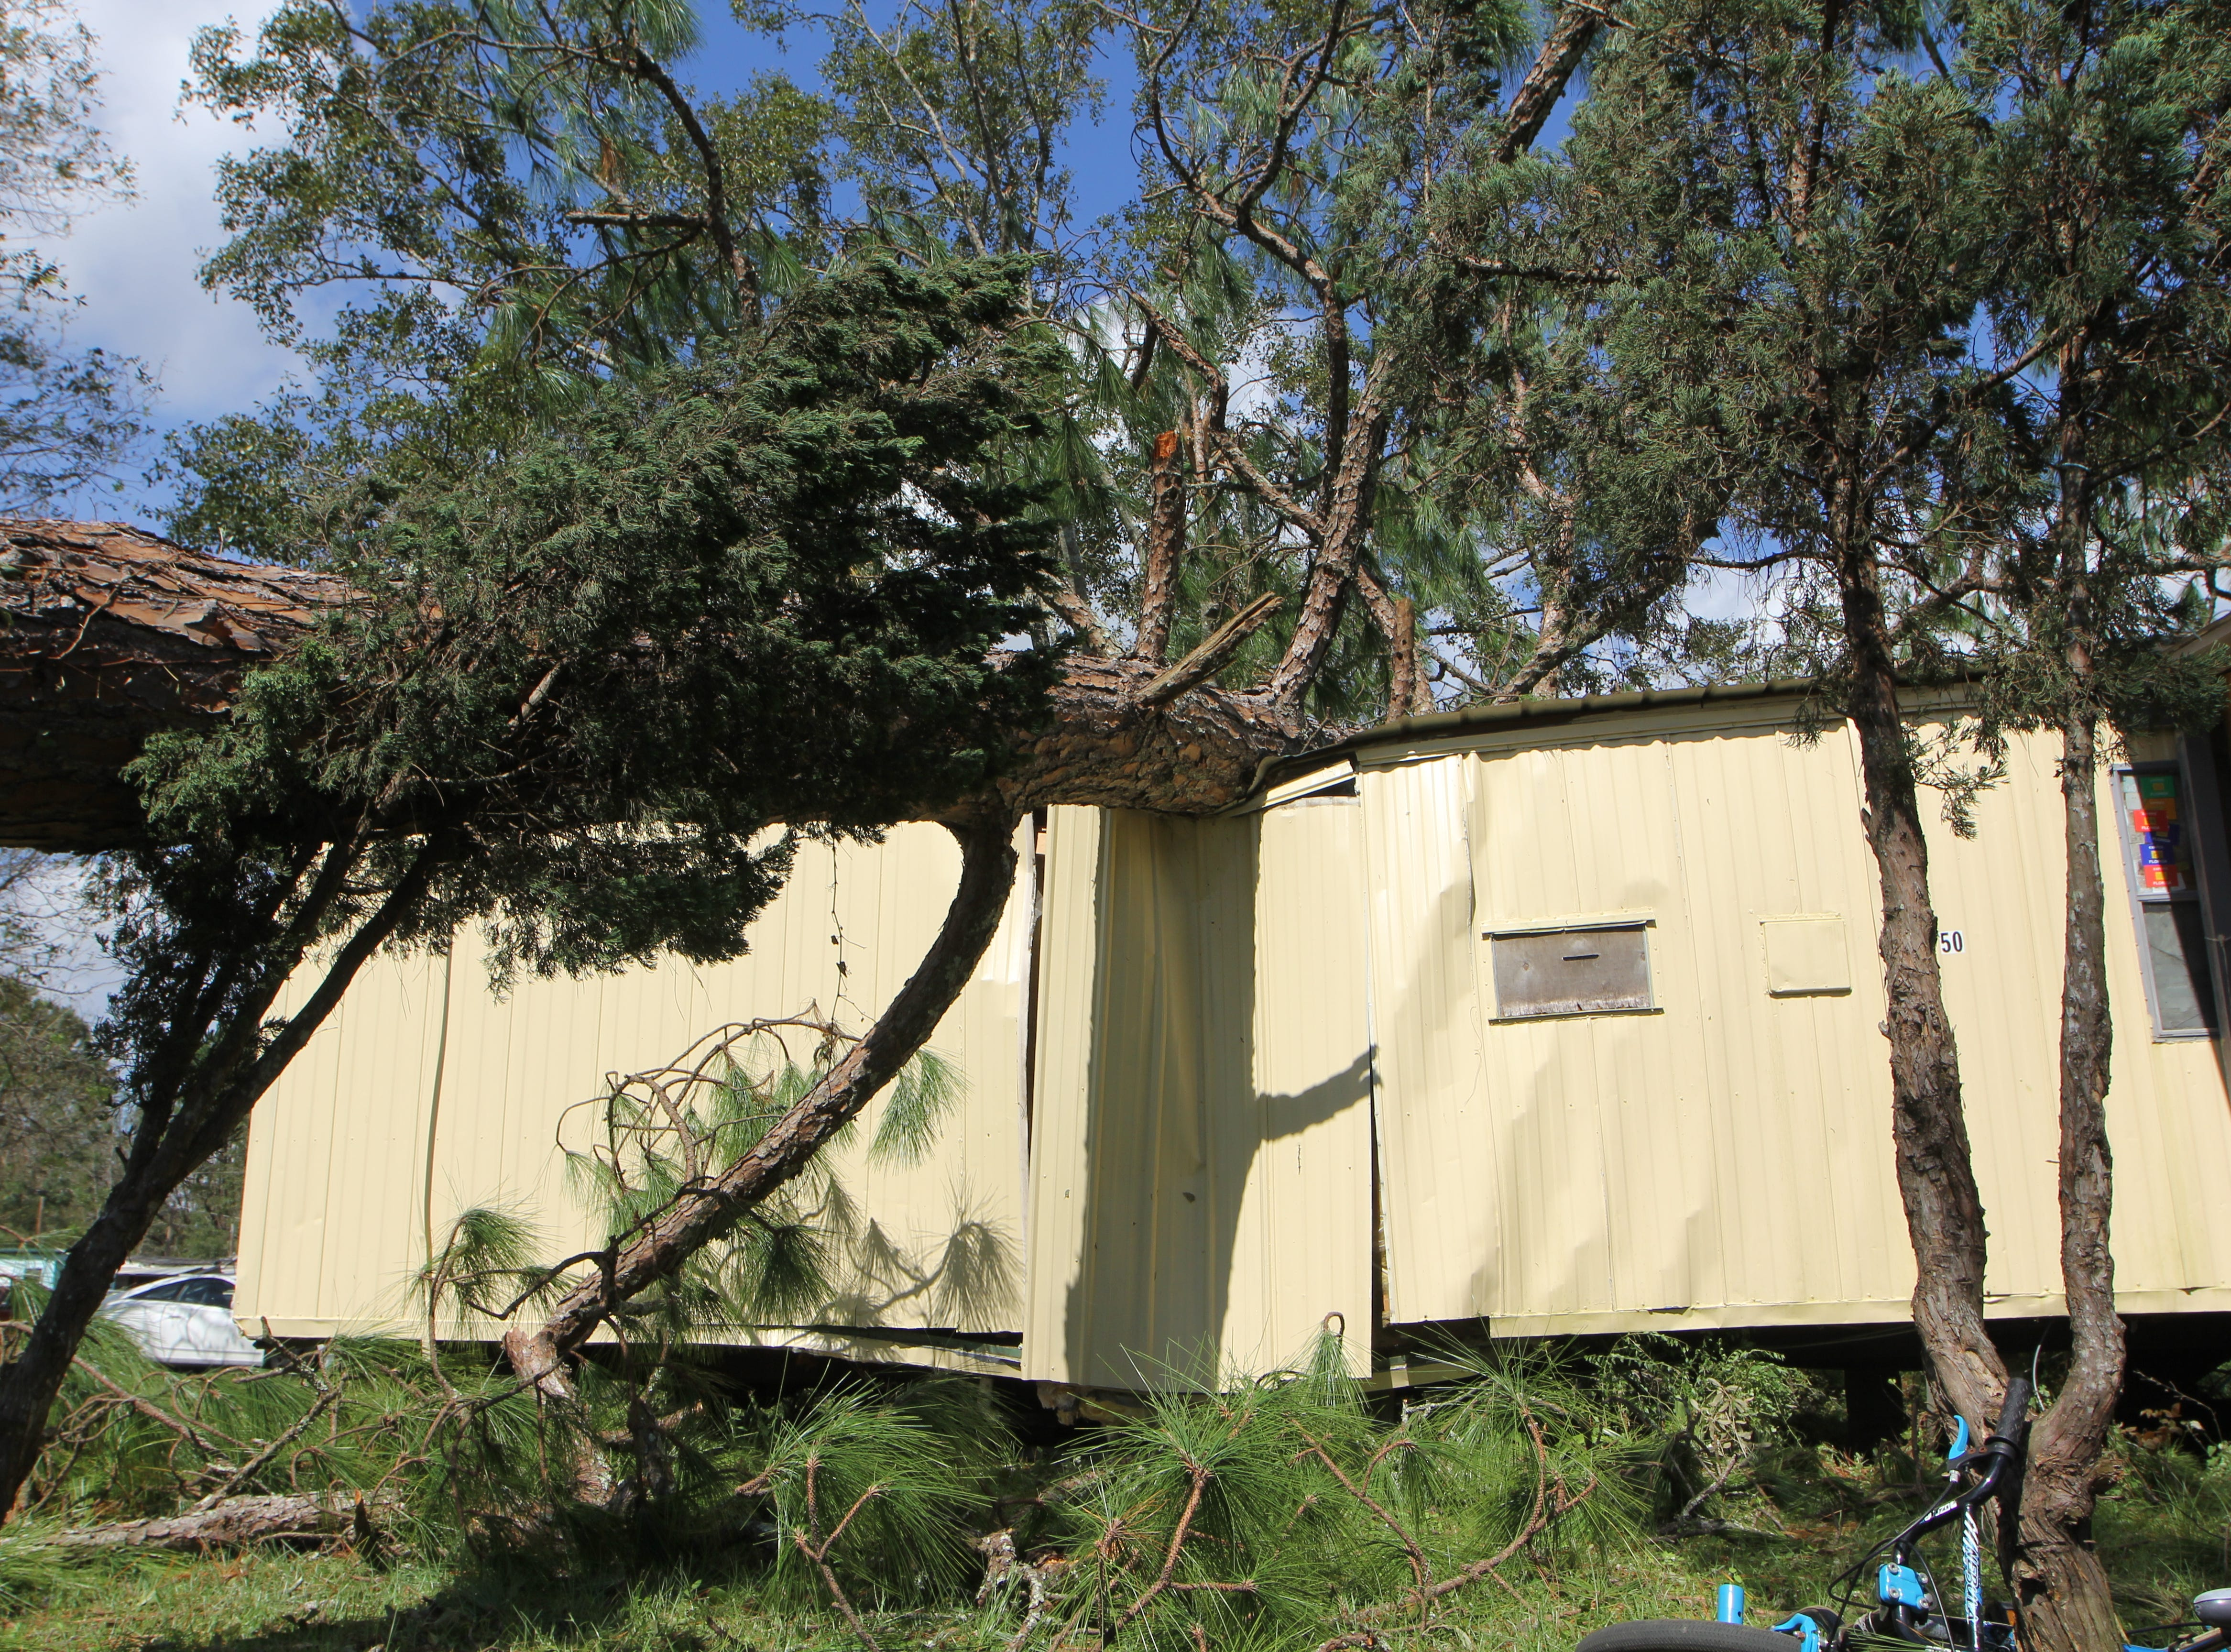 A Gadsden County mobile home pictured Thursday, Oct. 11, 2018 after Hurricane Michael.